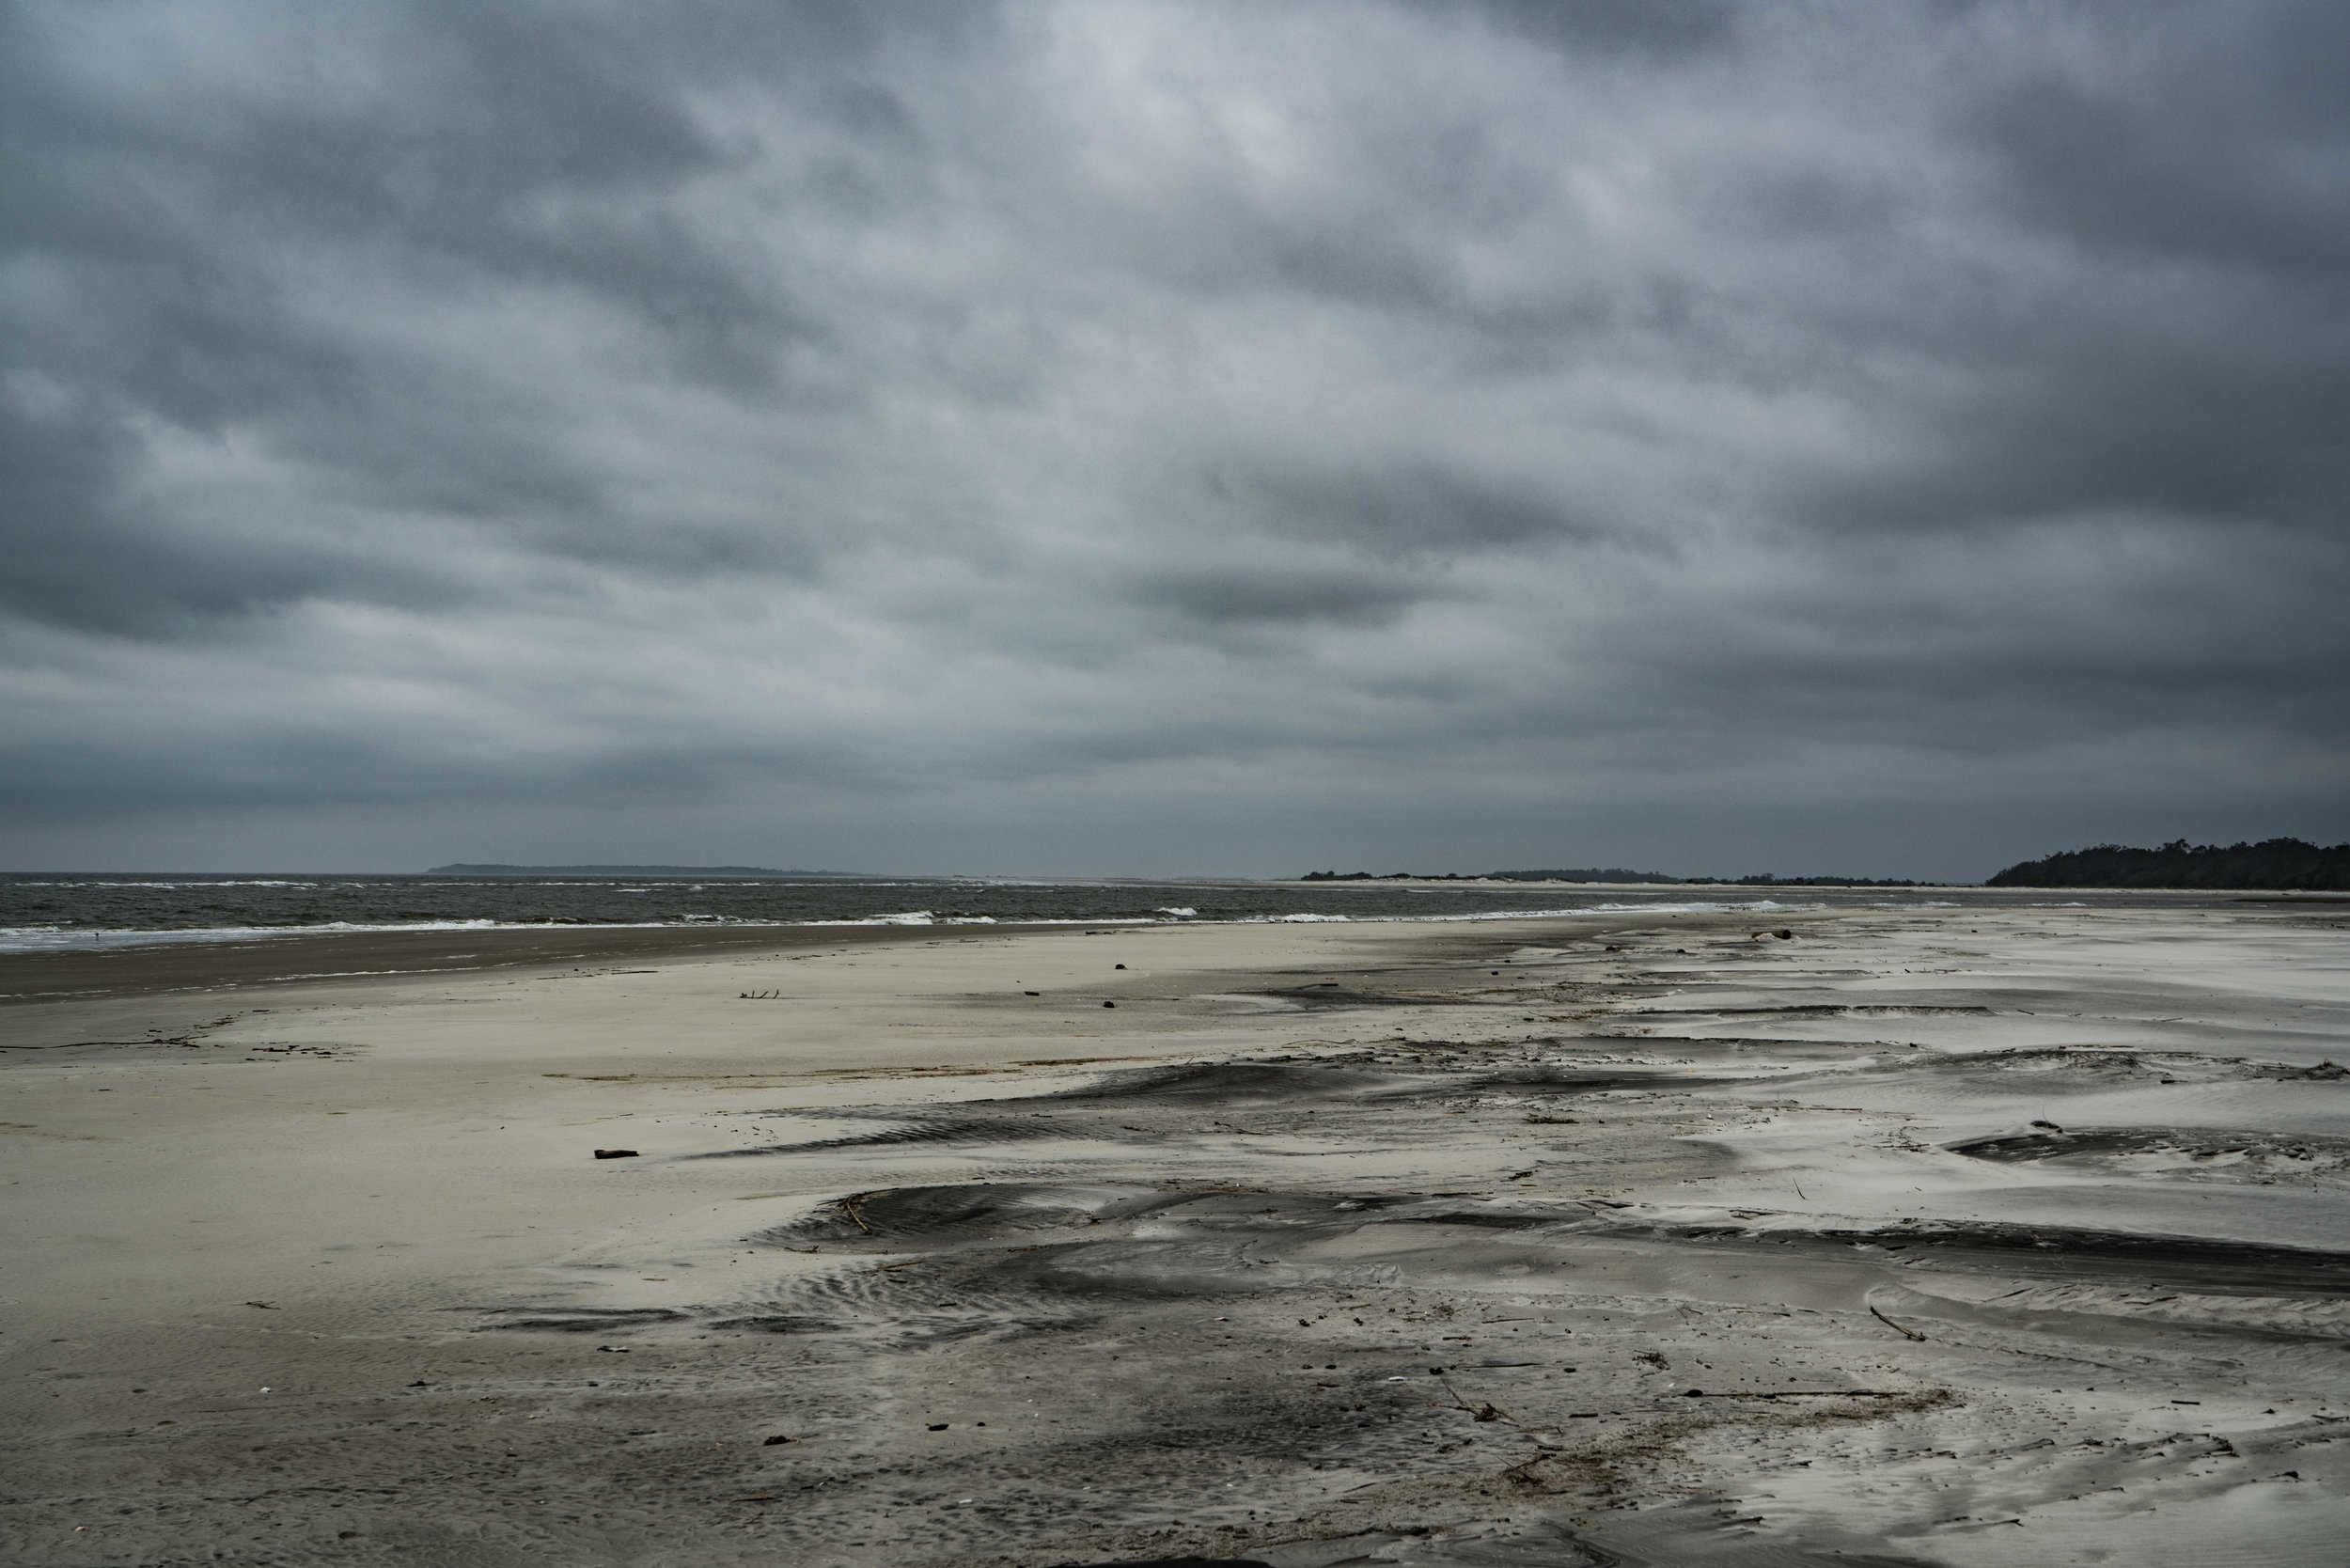 Stormy clouds over the beach on Little Tybee Island via micahdeyoung.com